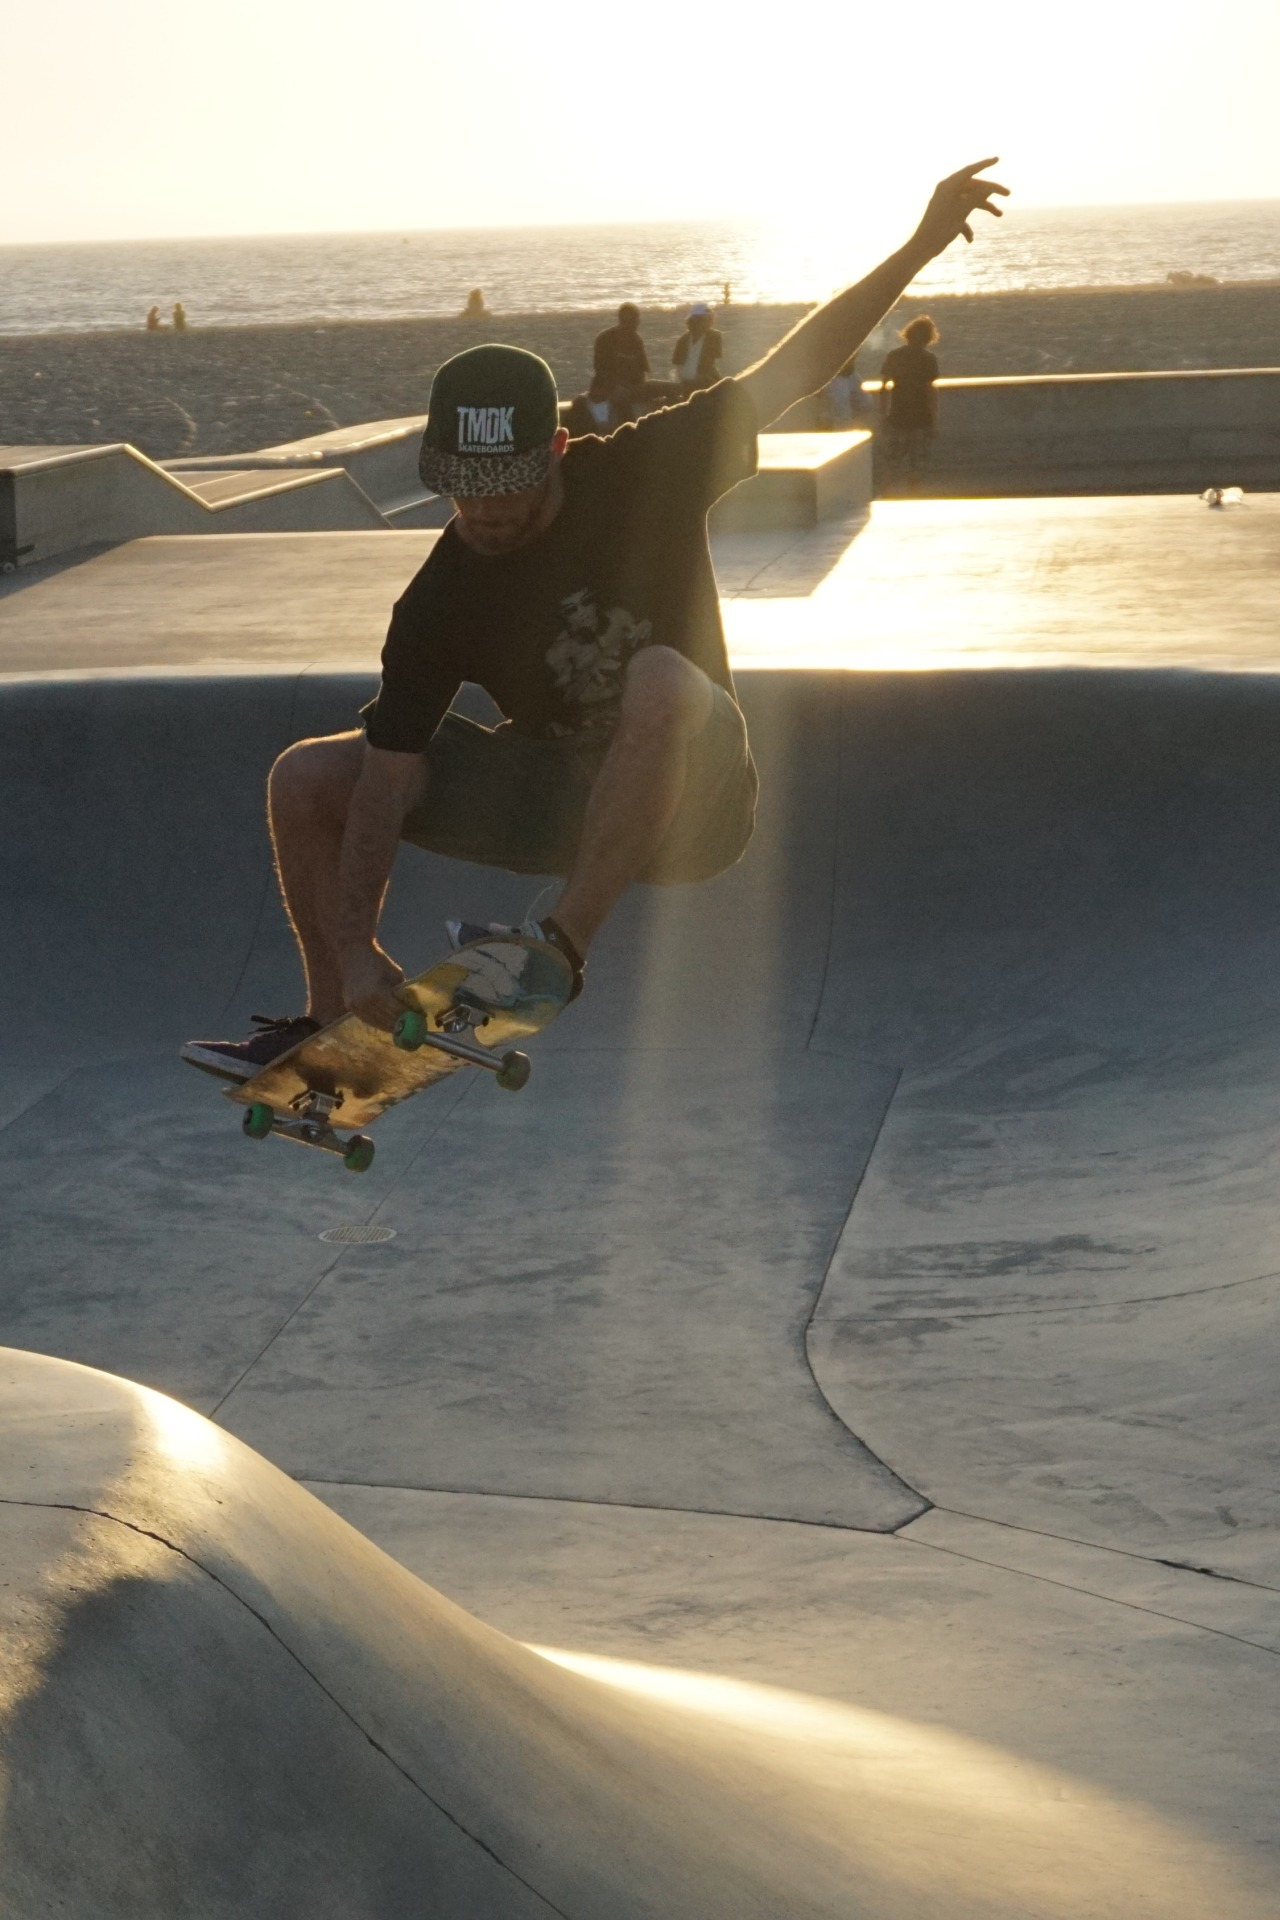 Saw some good skating at the Venice Beach Skatepark